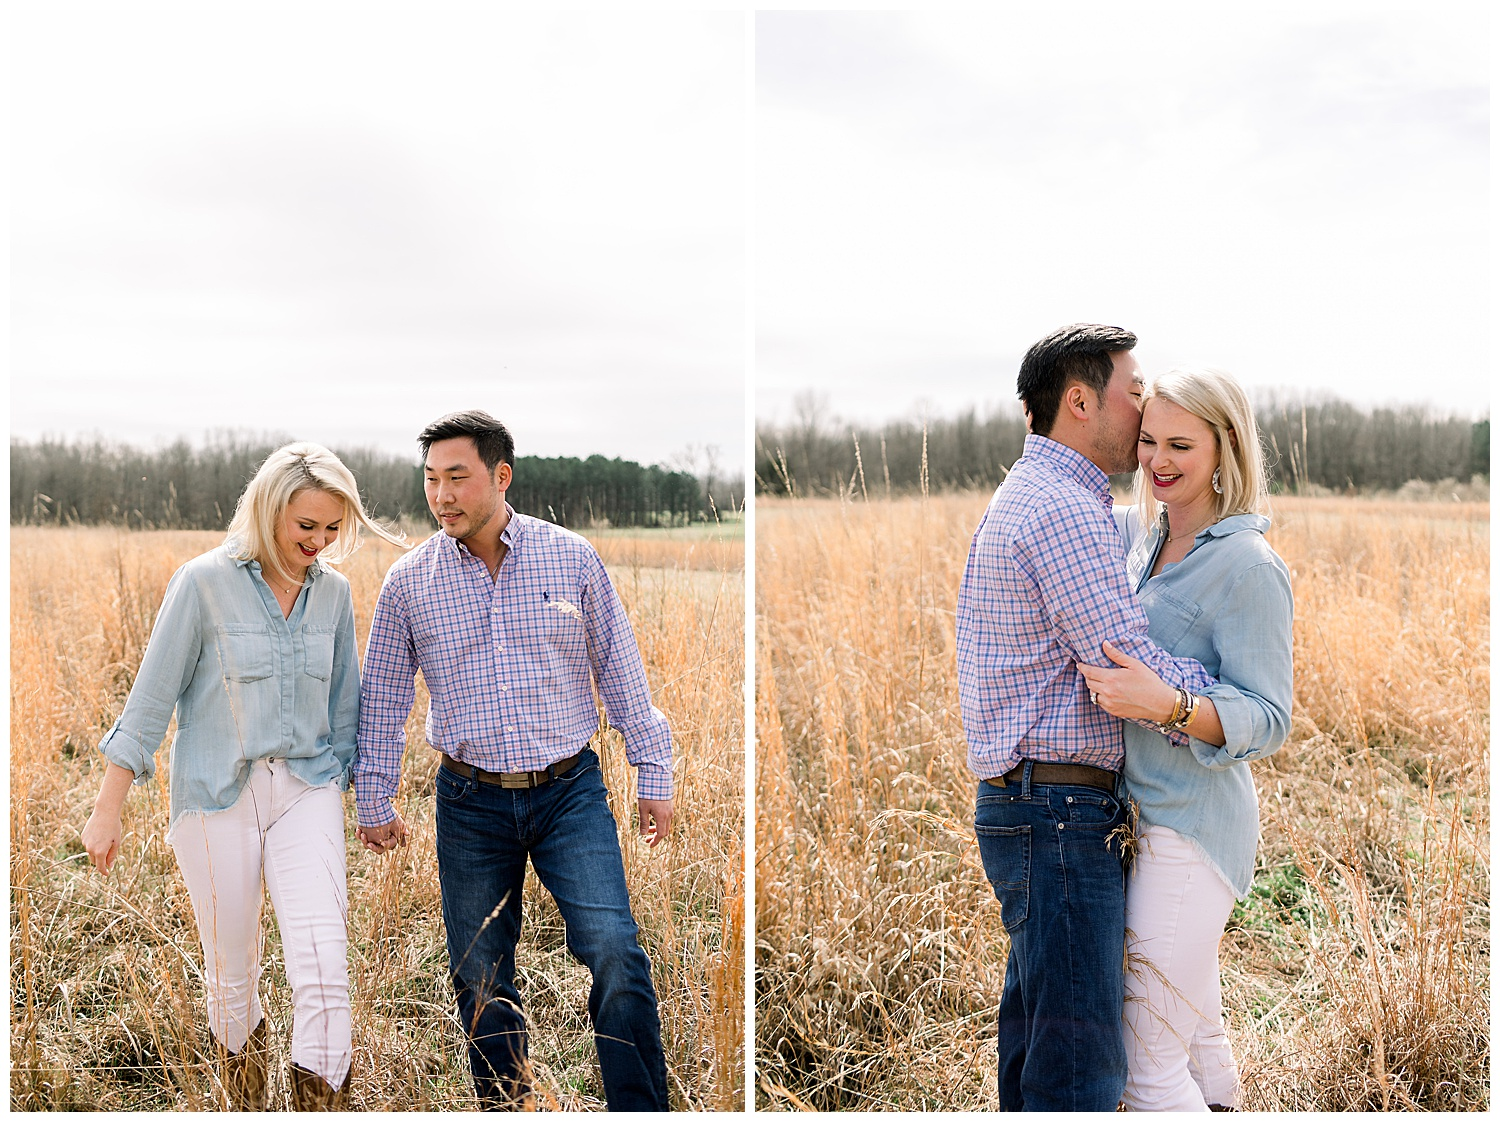 laura-isaac-farm-engagement-session-memphis-mary-kate-steele-photography